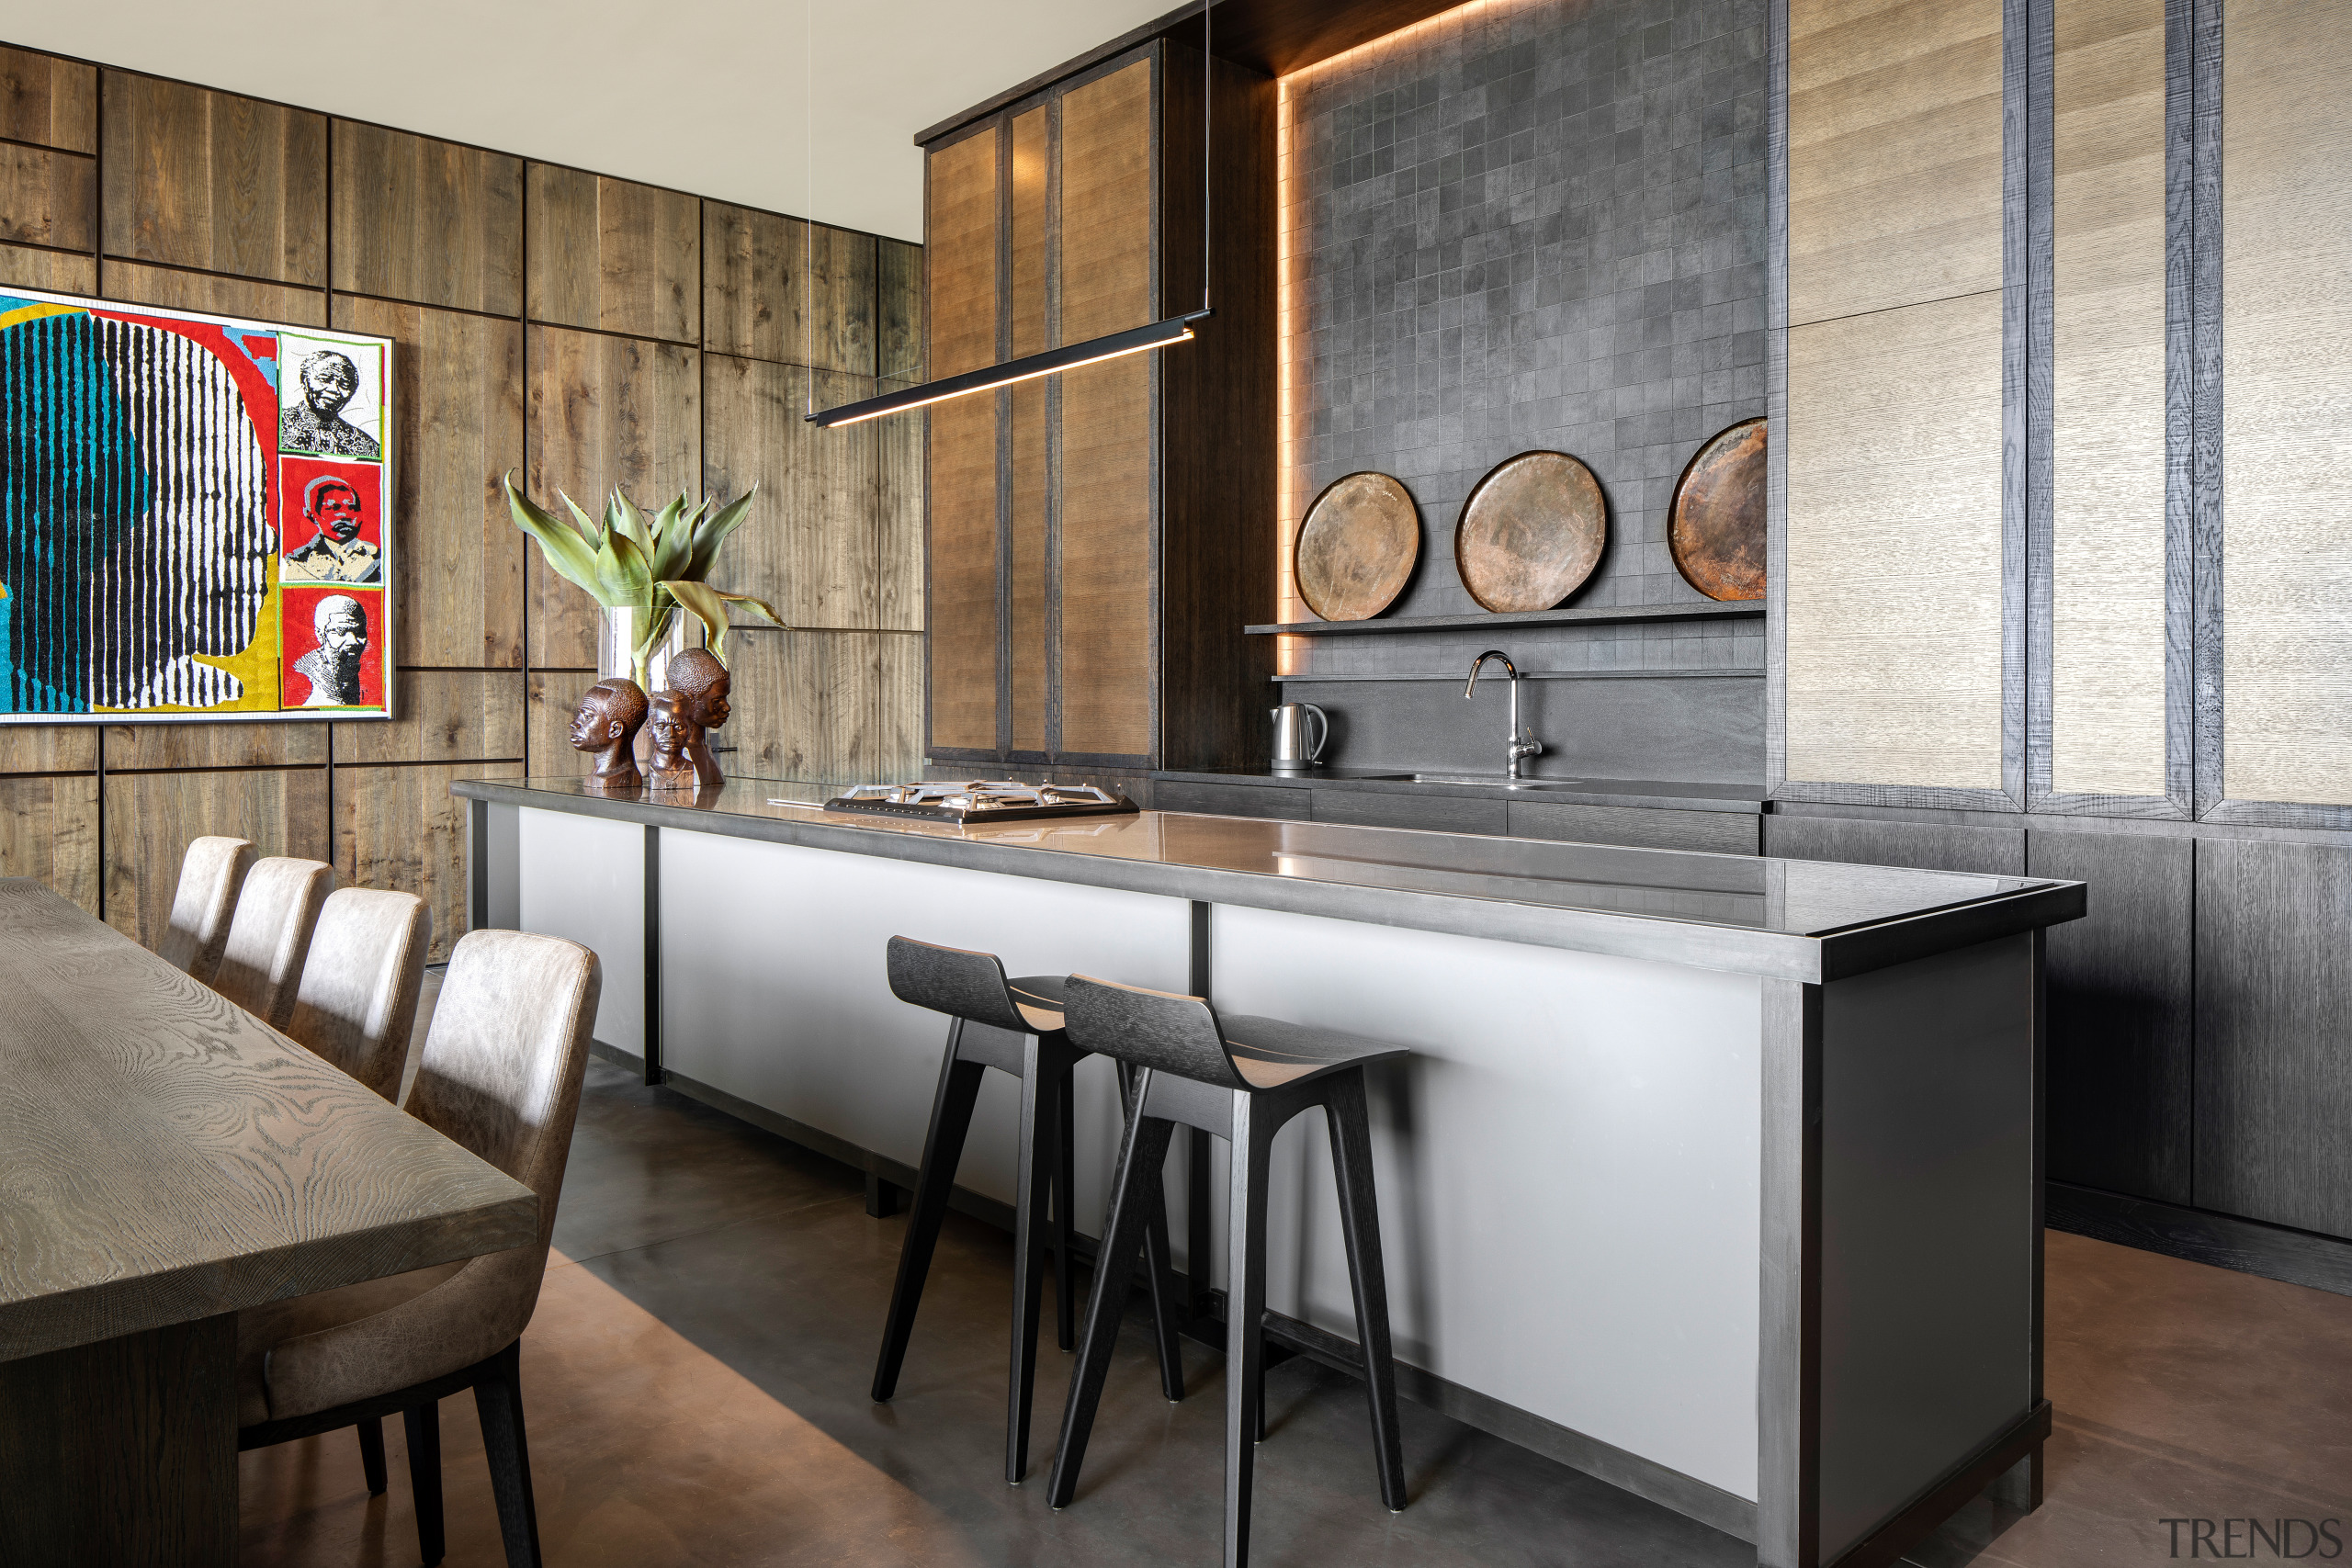 The emphasis on natural materiality can be seen architecture, building, cabinetry, countertop, dining room, floor, flooring, furniture, house, interior design, kitchen, material property, property, real estate, room, table, wall, gray, black